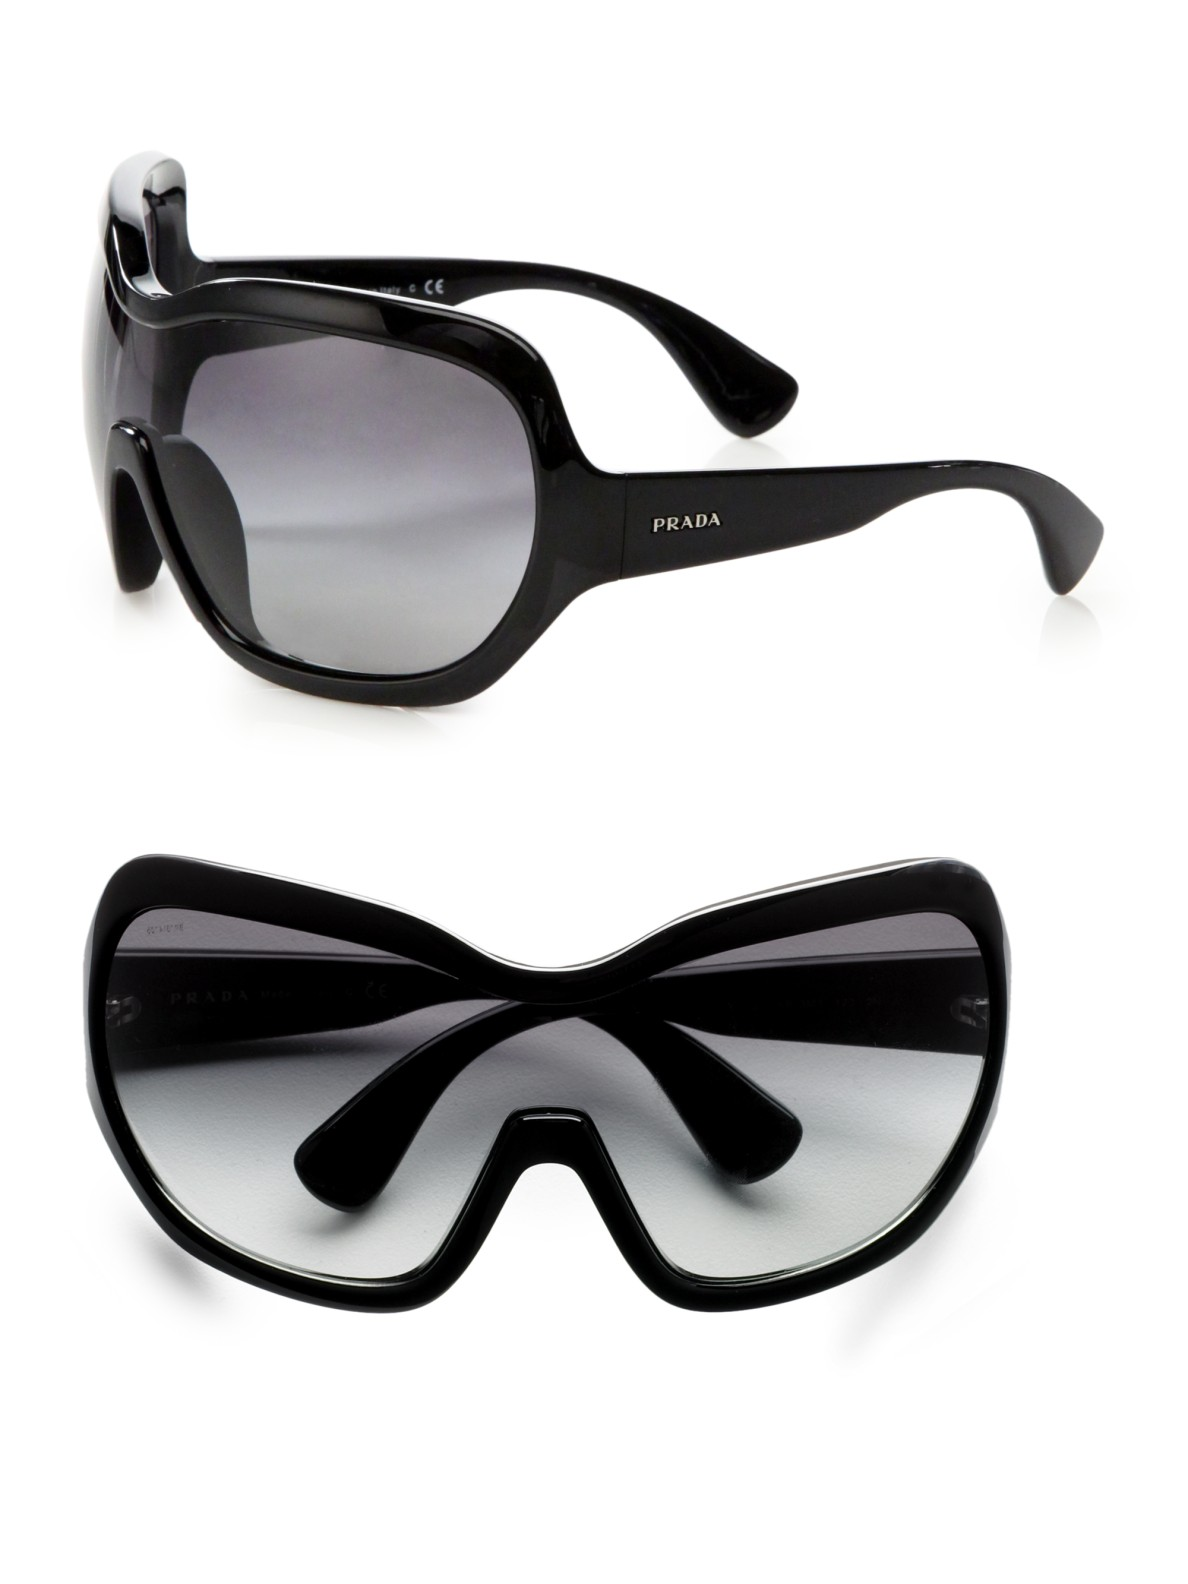 purses prada - Prada Illusion Ski Mask-inspired Sunglasses in Yellow (black) | Lyst